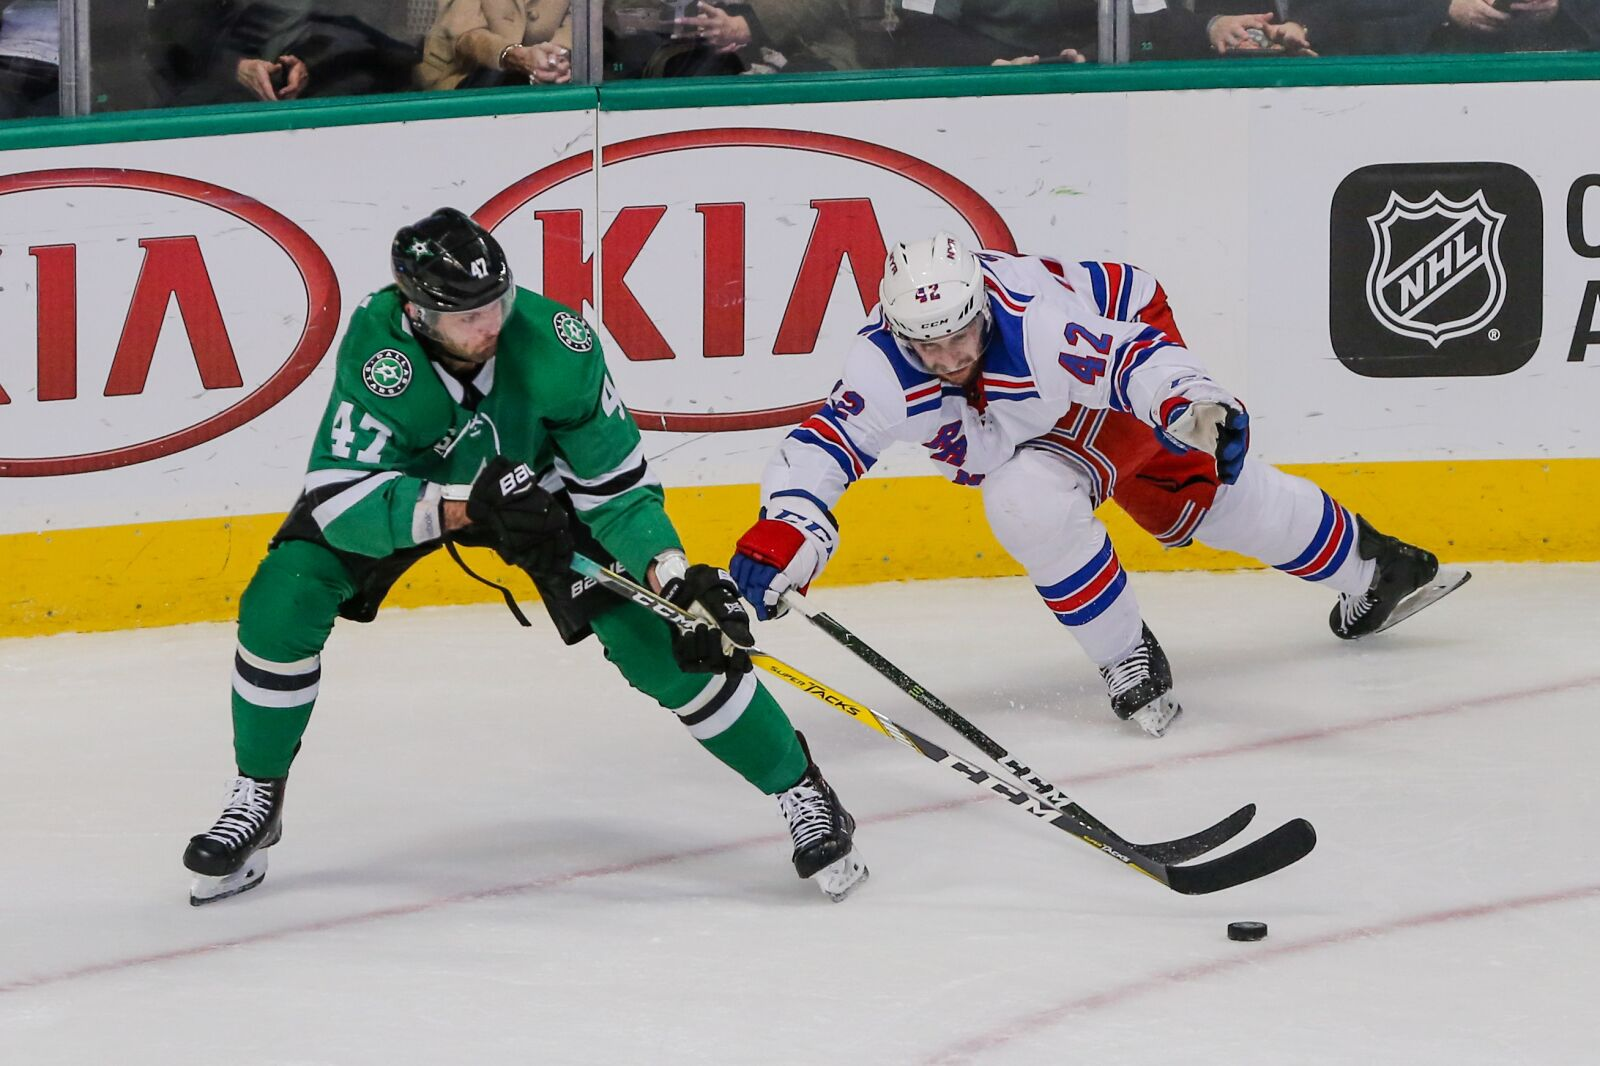 Dallas Stars: Alexander Radulov Out, Seven Defenders In vs. Rangers